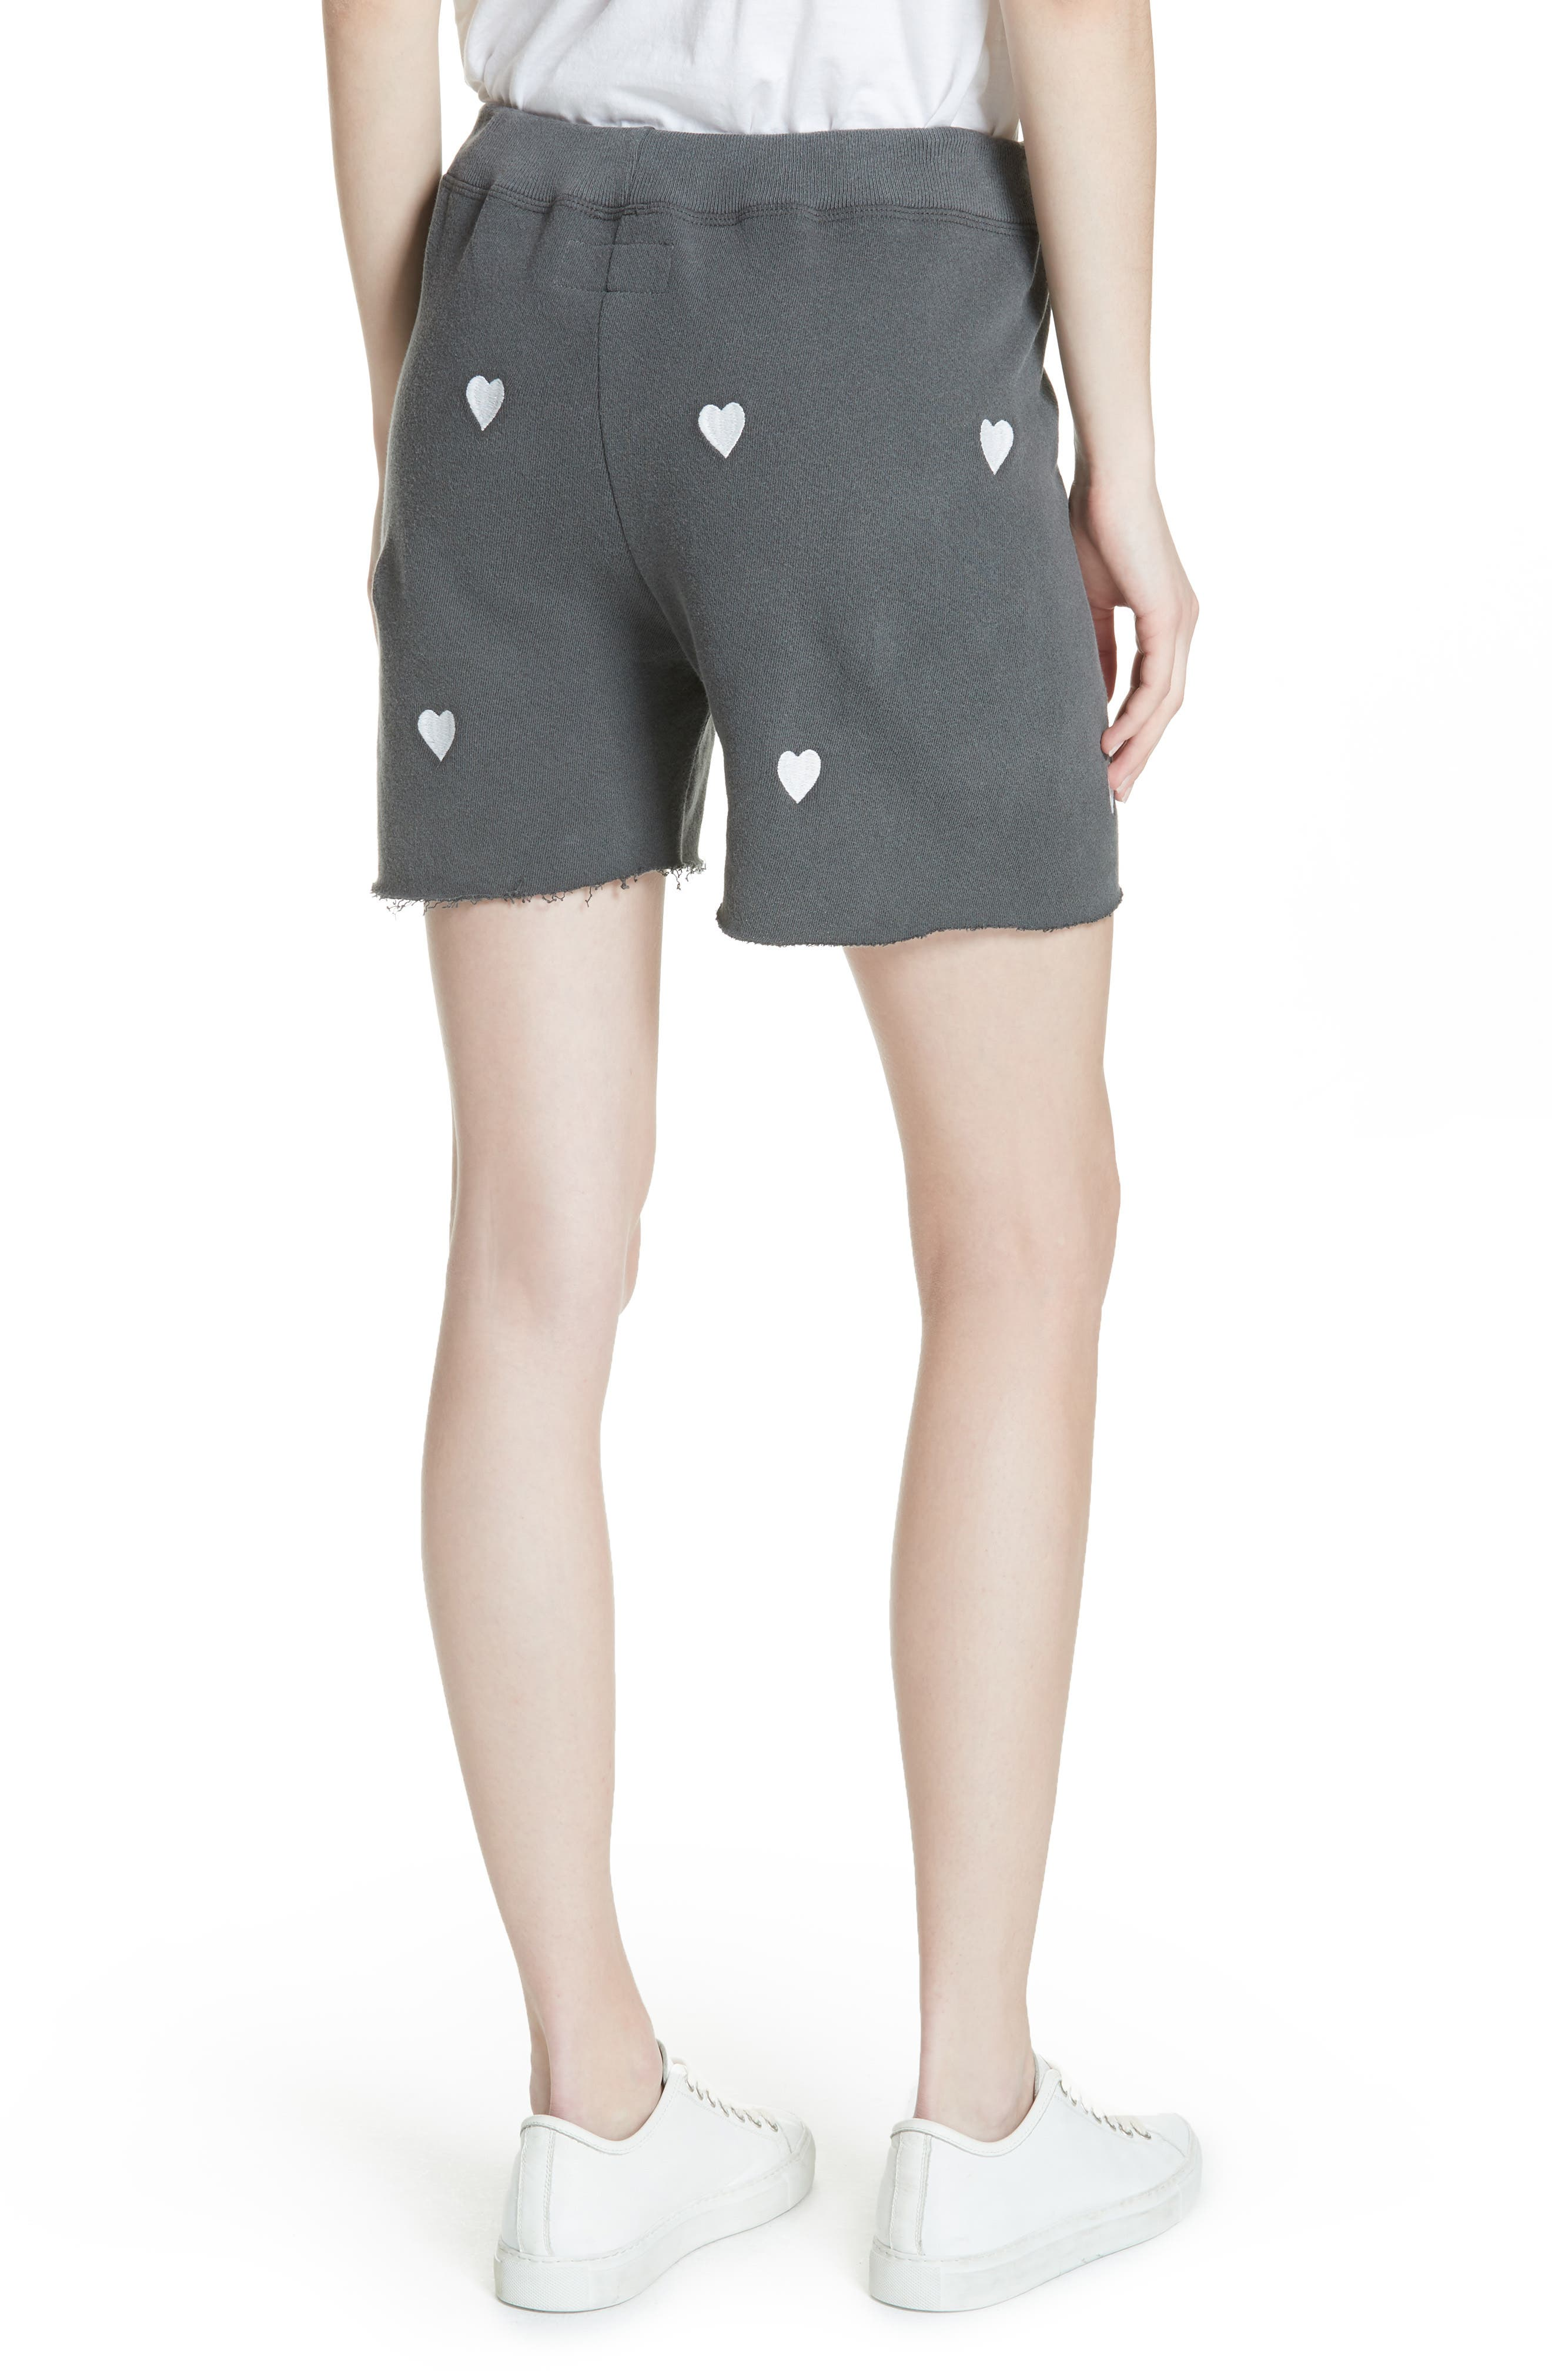 The Sweat Shorts,                             Alternate thumbnail 2, color,                             Washed Black/ White Hearts